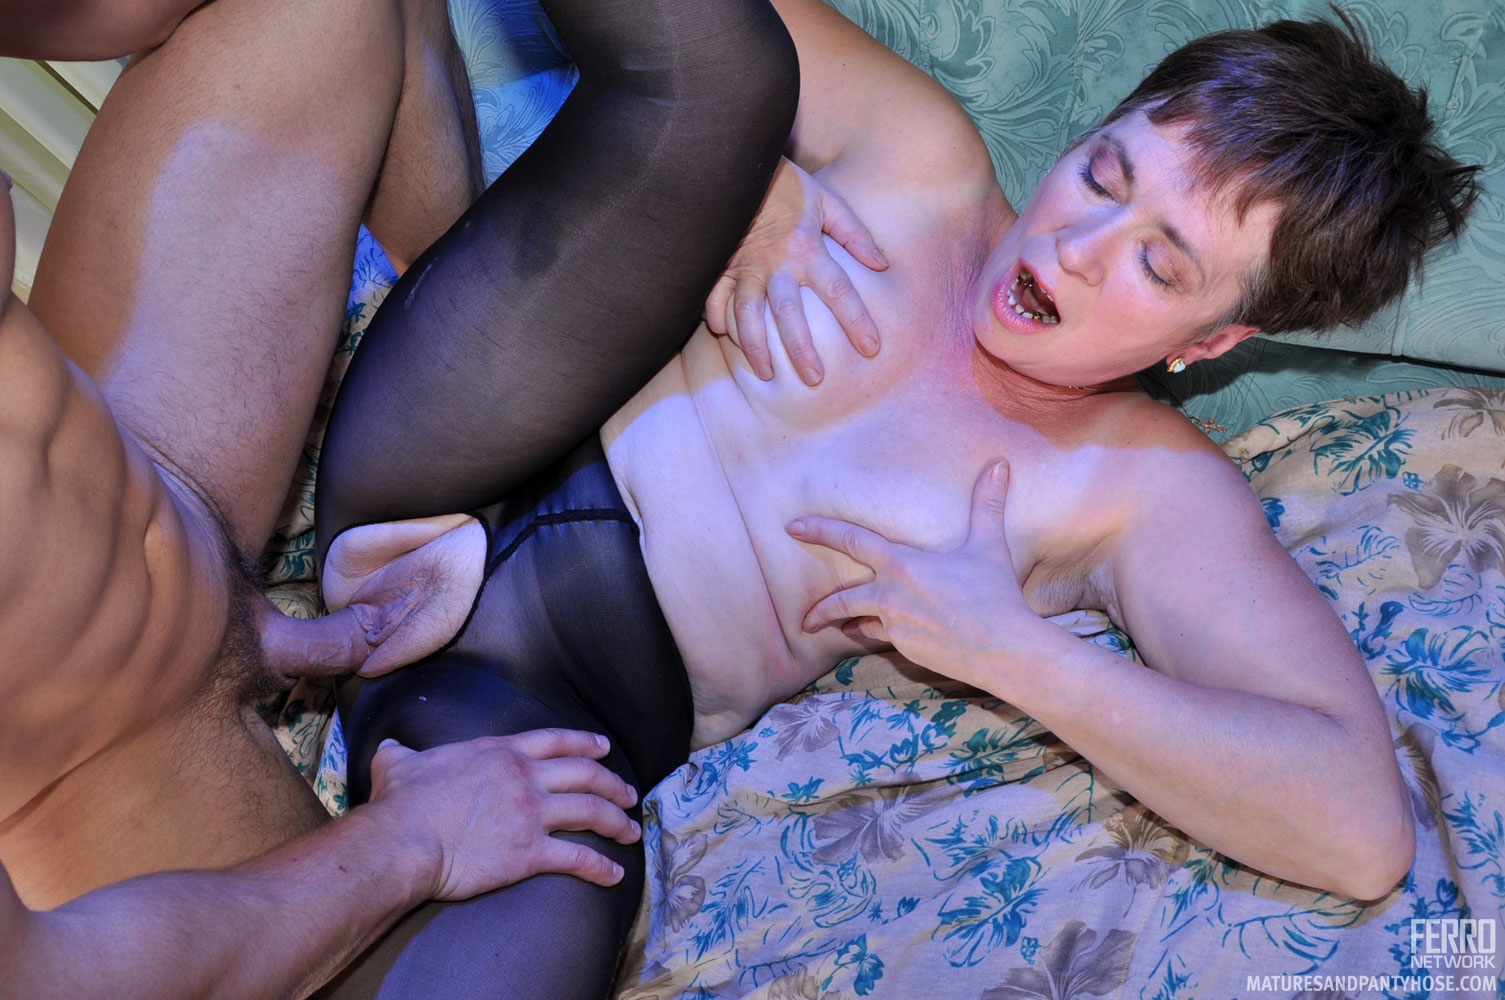 Con wife into sex with black man